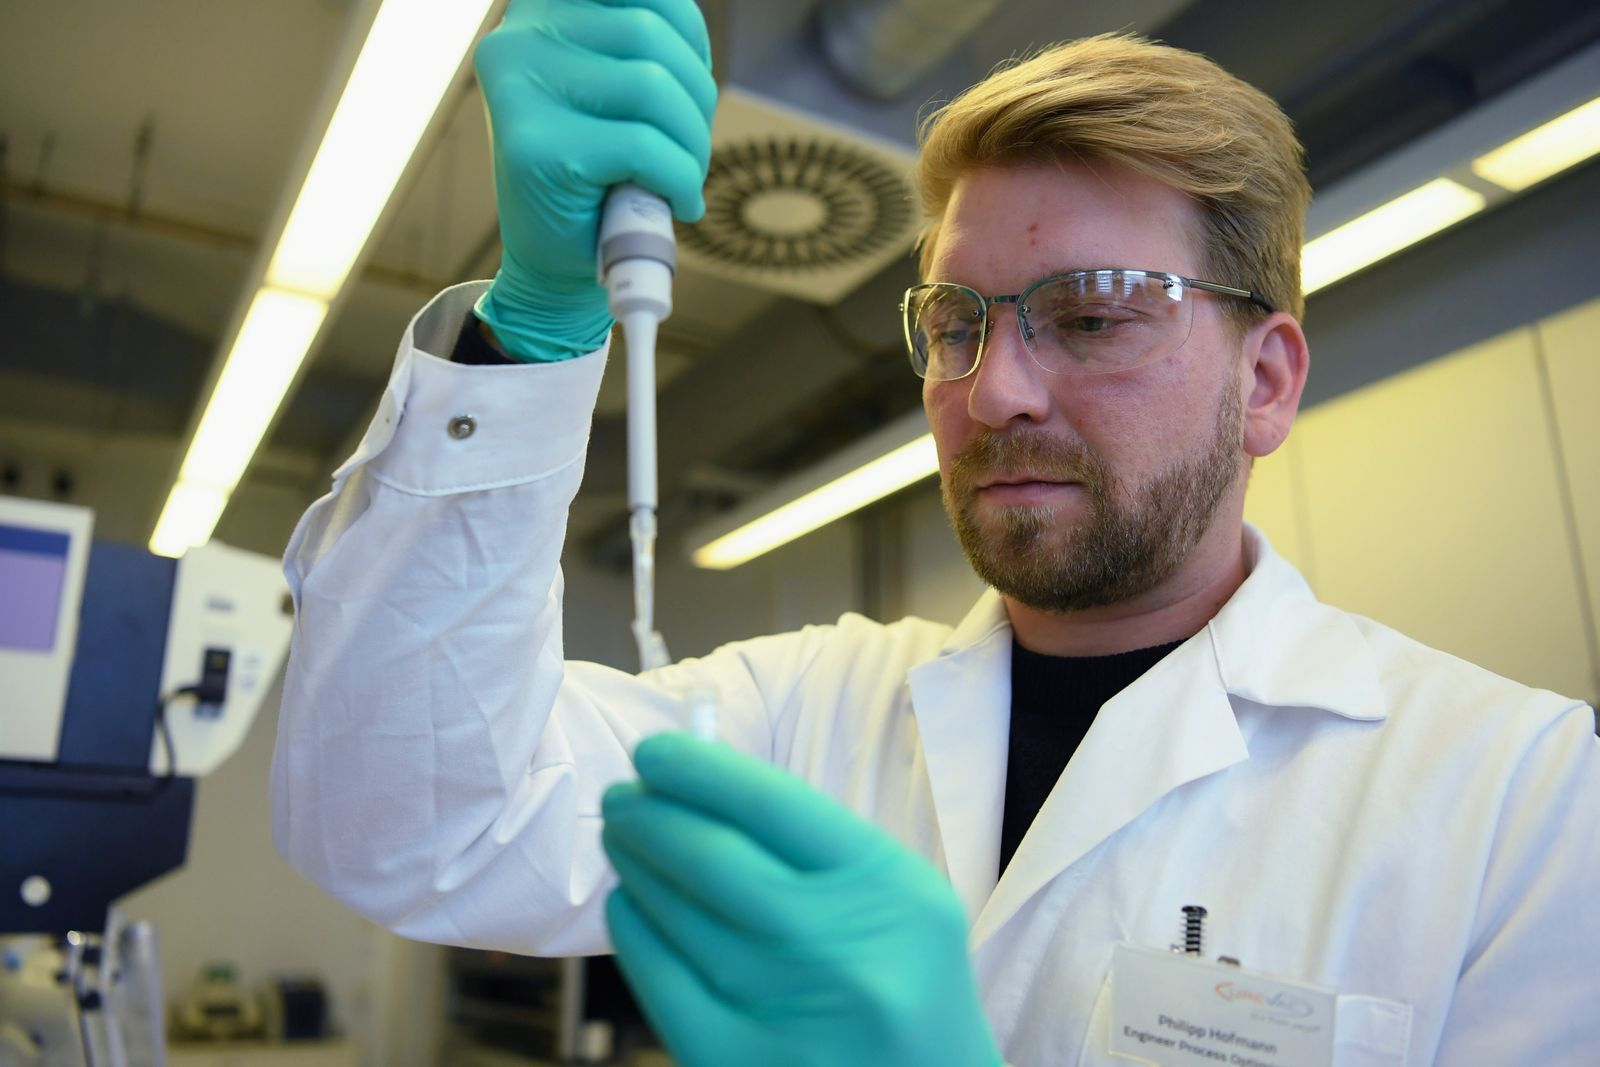 Employee Philipp Hoffmann, of German biopharmaceutical company CureVac, demonstrates research workflow on a vaccine for the coronavirus (COVID-19) disease at a laboratory in Tuebingen